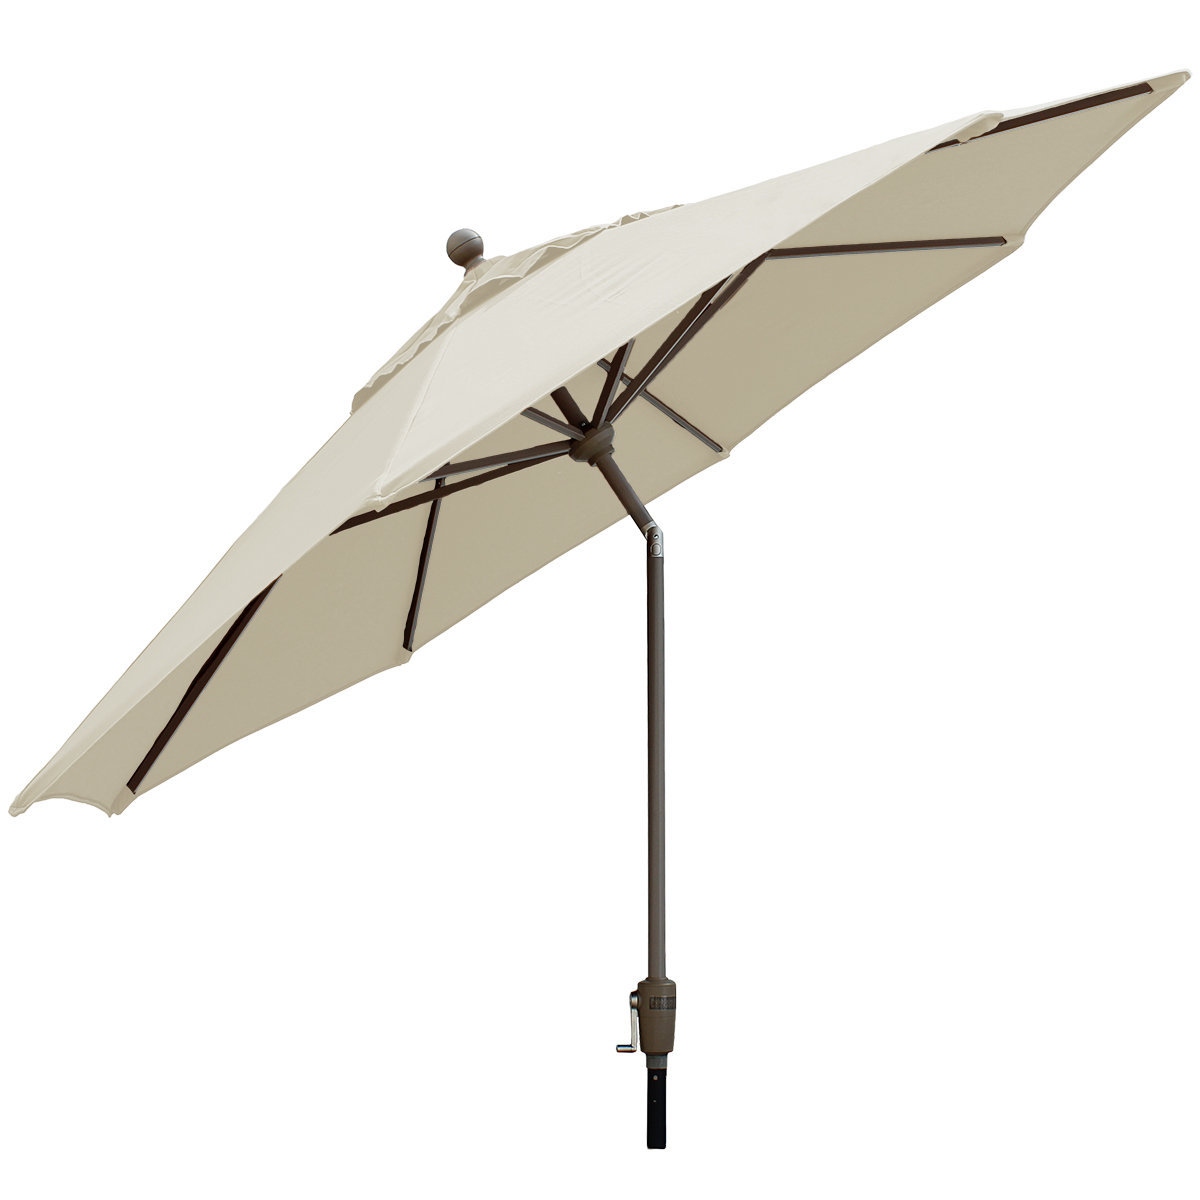 Crowland 9' Market Sunbrella Umbrella Regarding Favorite Sherlyn Rectangular Market Umbrellas (View 2 of 20)